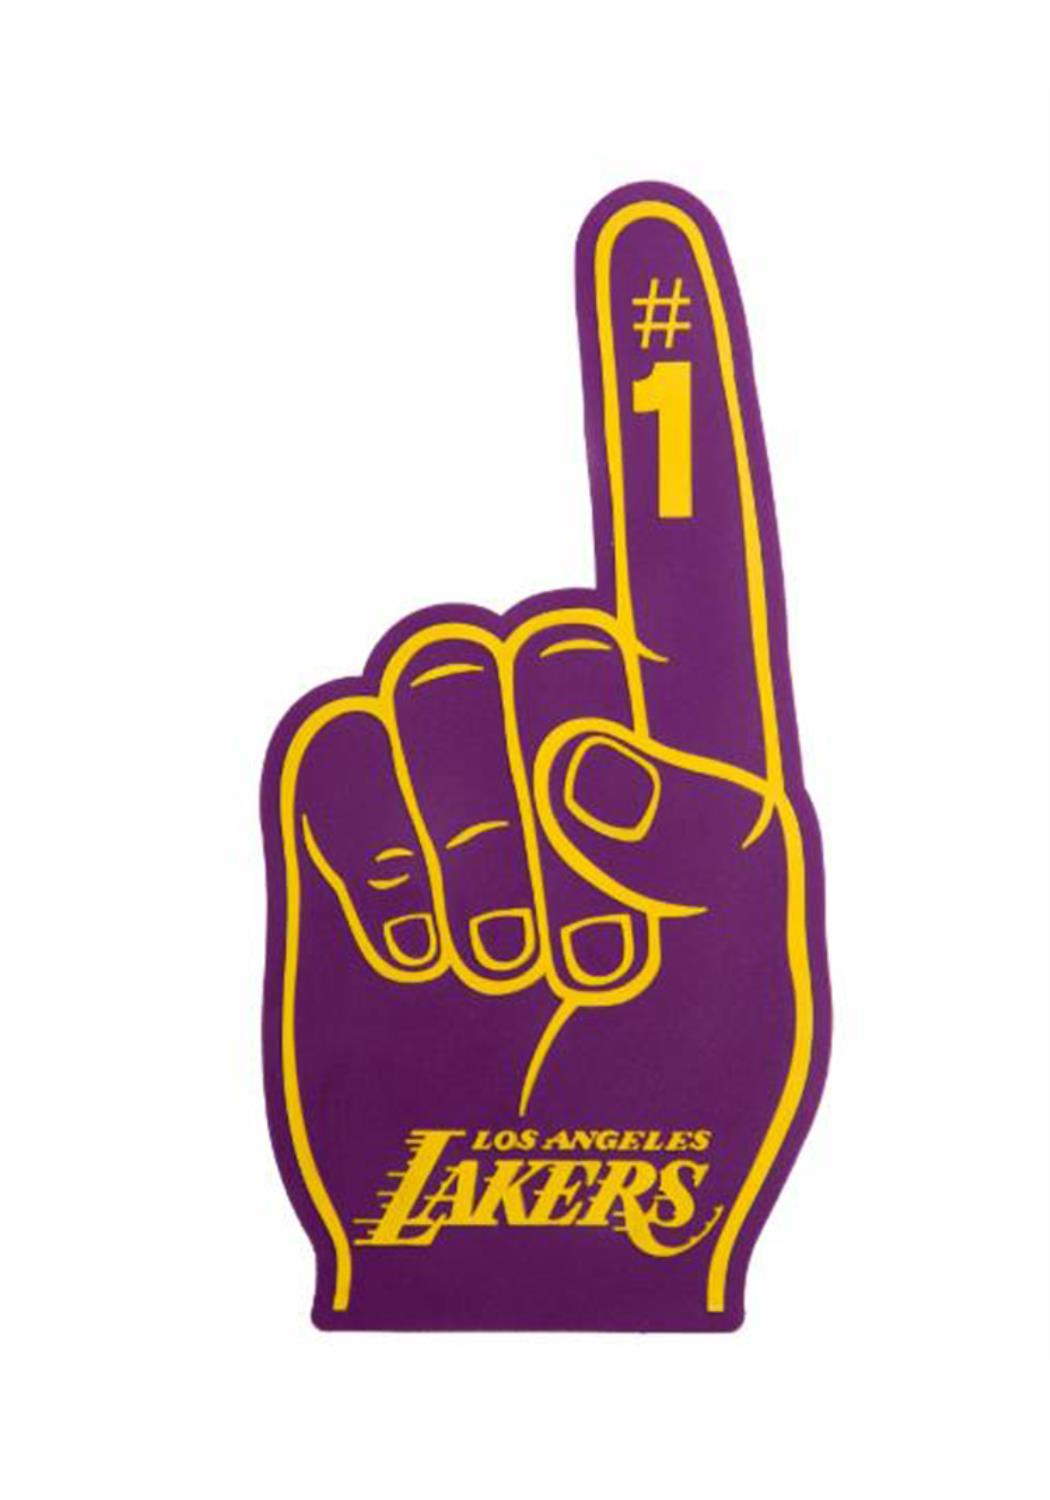 LAKERS - NUMBER ONE- OFFICIAL NBA LICENSED PHONE CHARGER